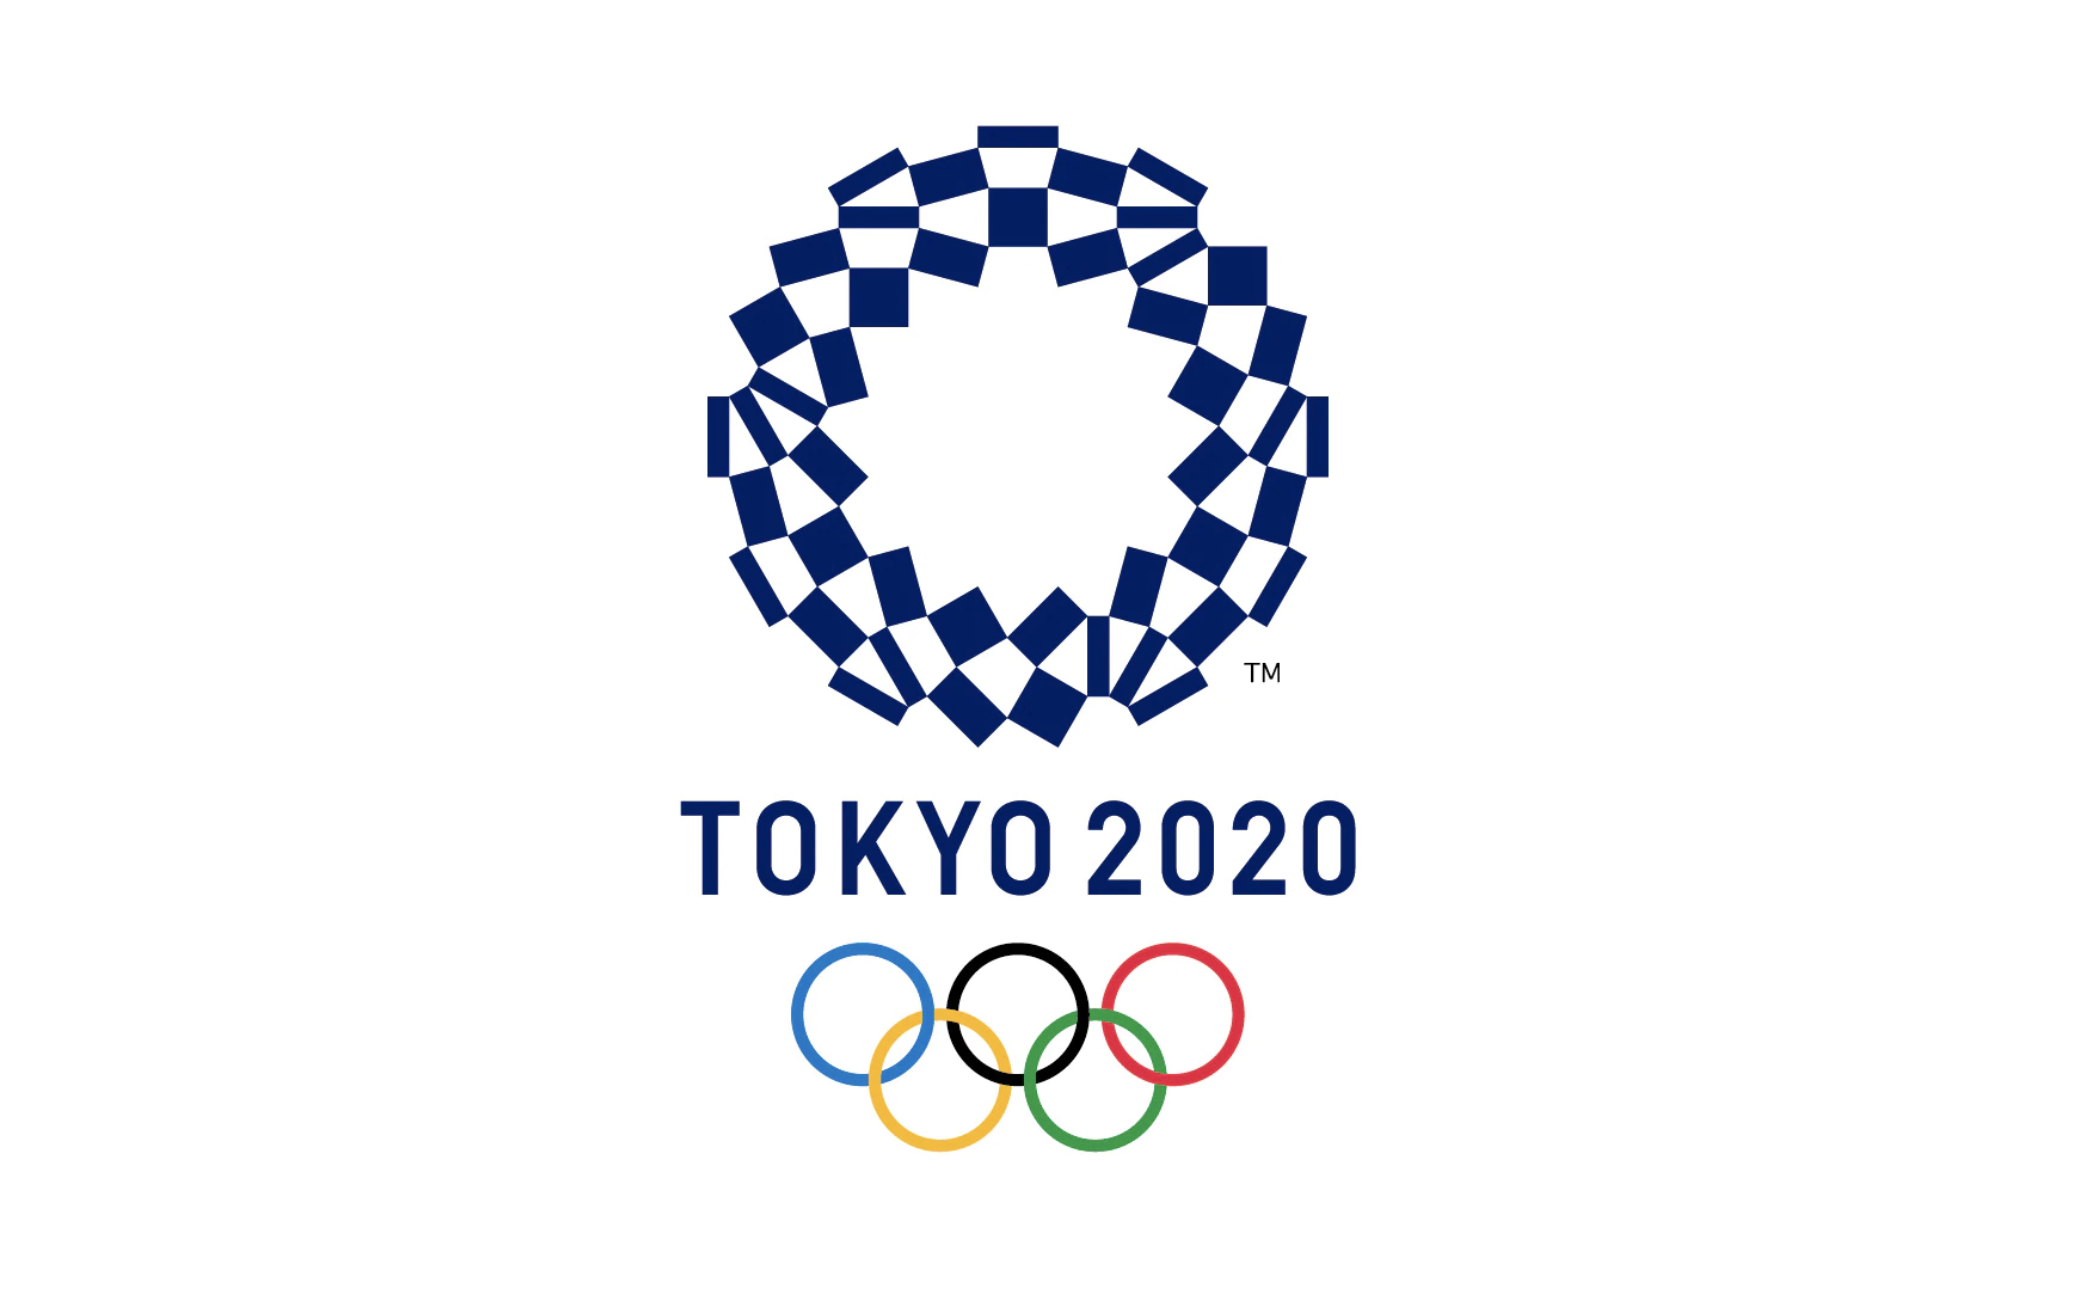 Saudi Olympic Football Team Qualifies For Tokyo 2020 First Olympic Soccer Bid In 24 Years Sustg Com News Analysis And Features On All Things Saudi Arabia